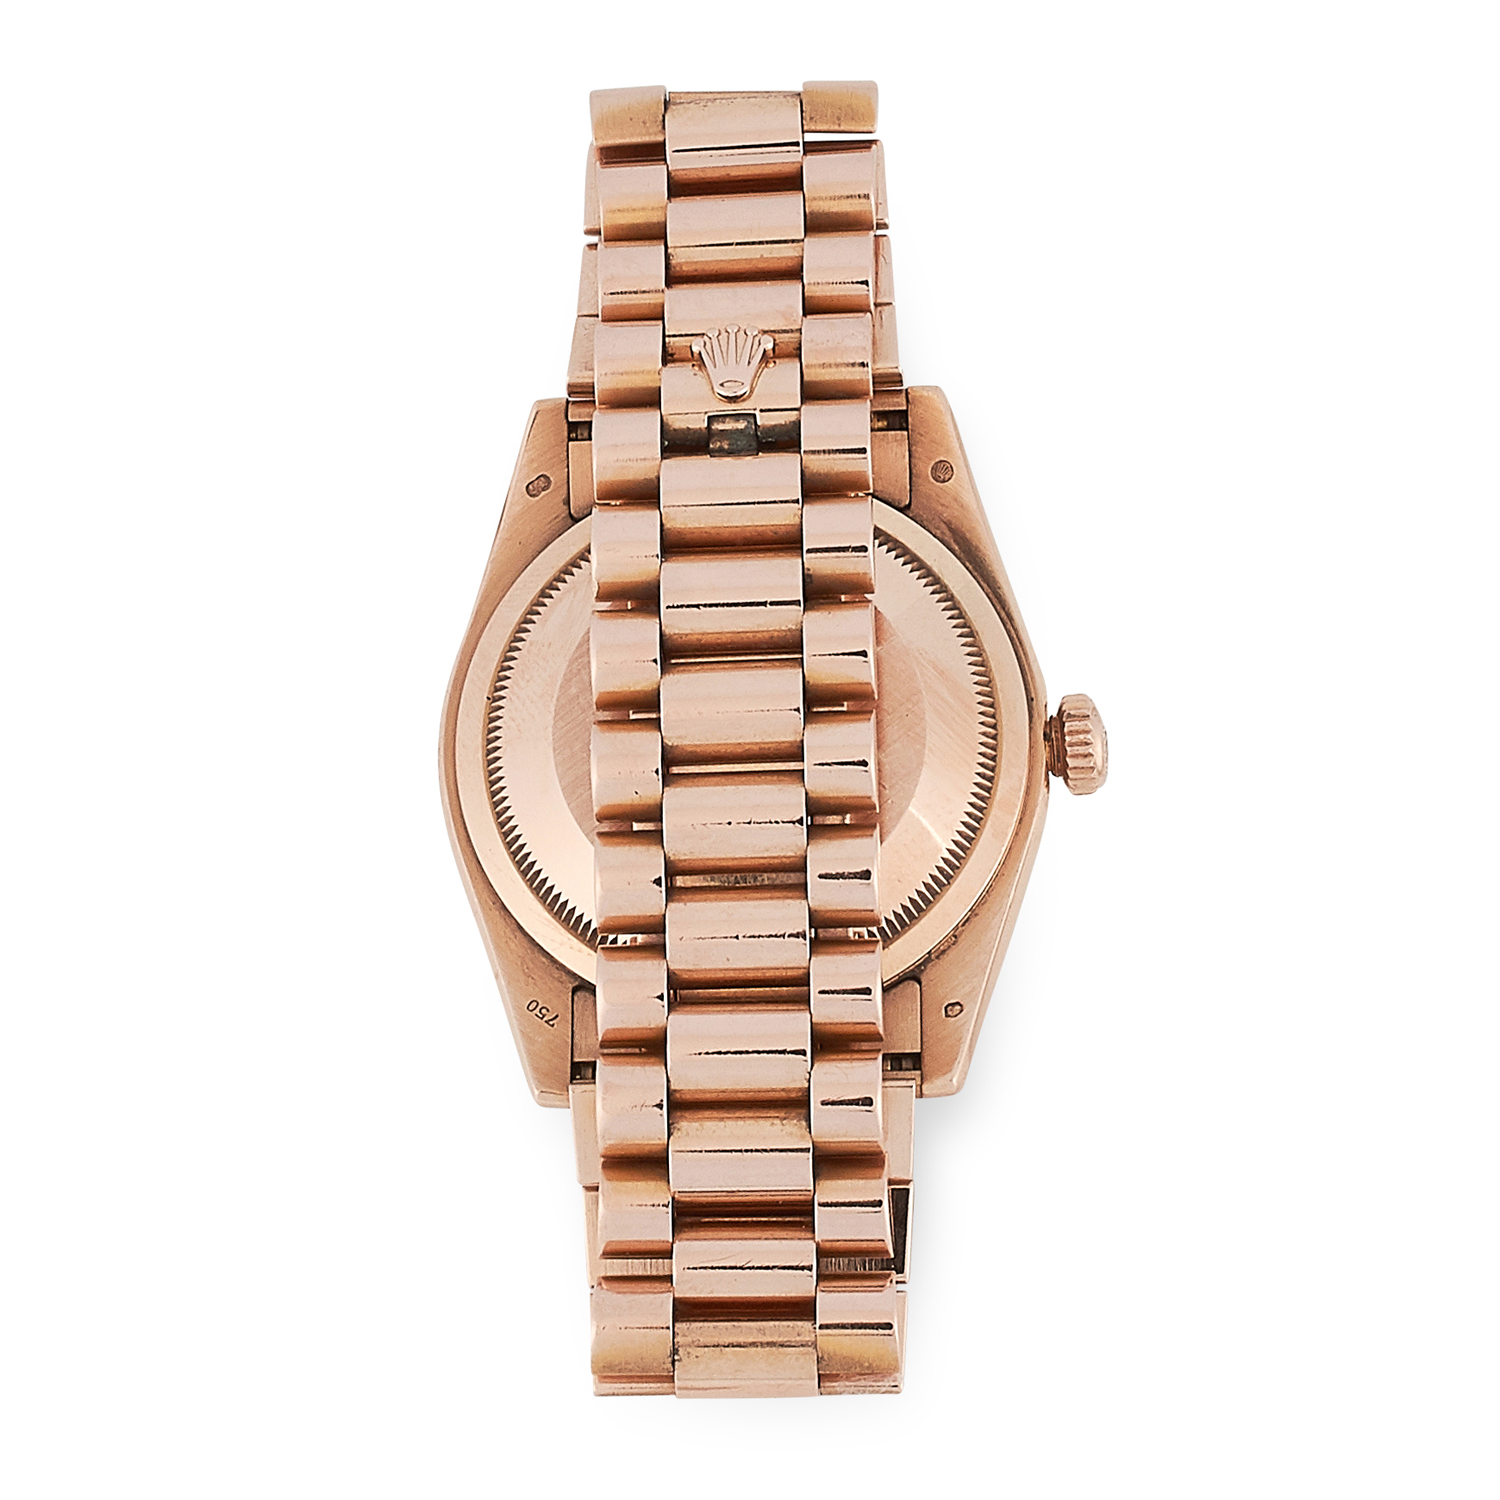 A LADIES OYSTER PERPETUAL DAY-DATE WRISTWATCH, ROLEX in 18ct rose gold, the rosé coloured dial, - Image 2 of 2